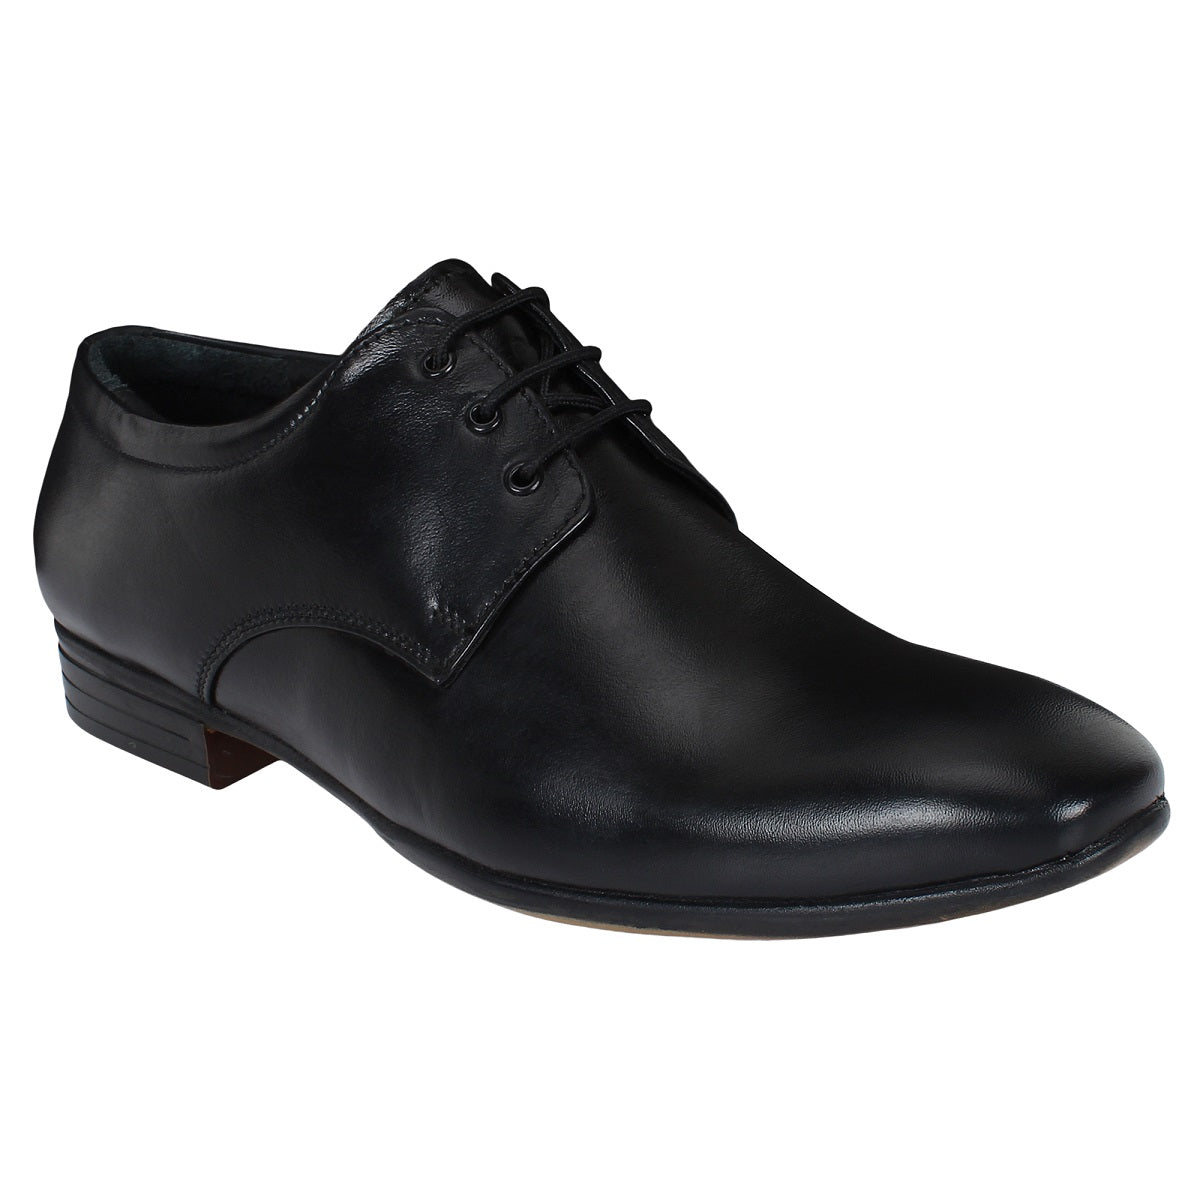 RoarKing Square Toe Formal Shoes for Men - Minor Defect